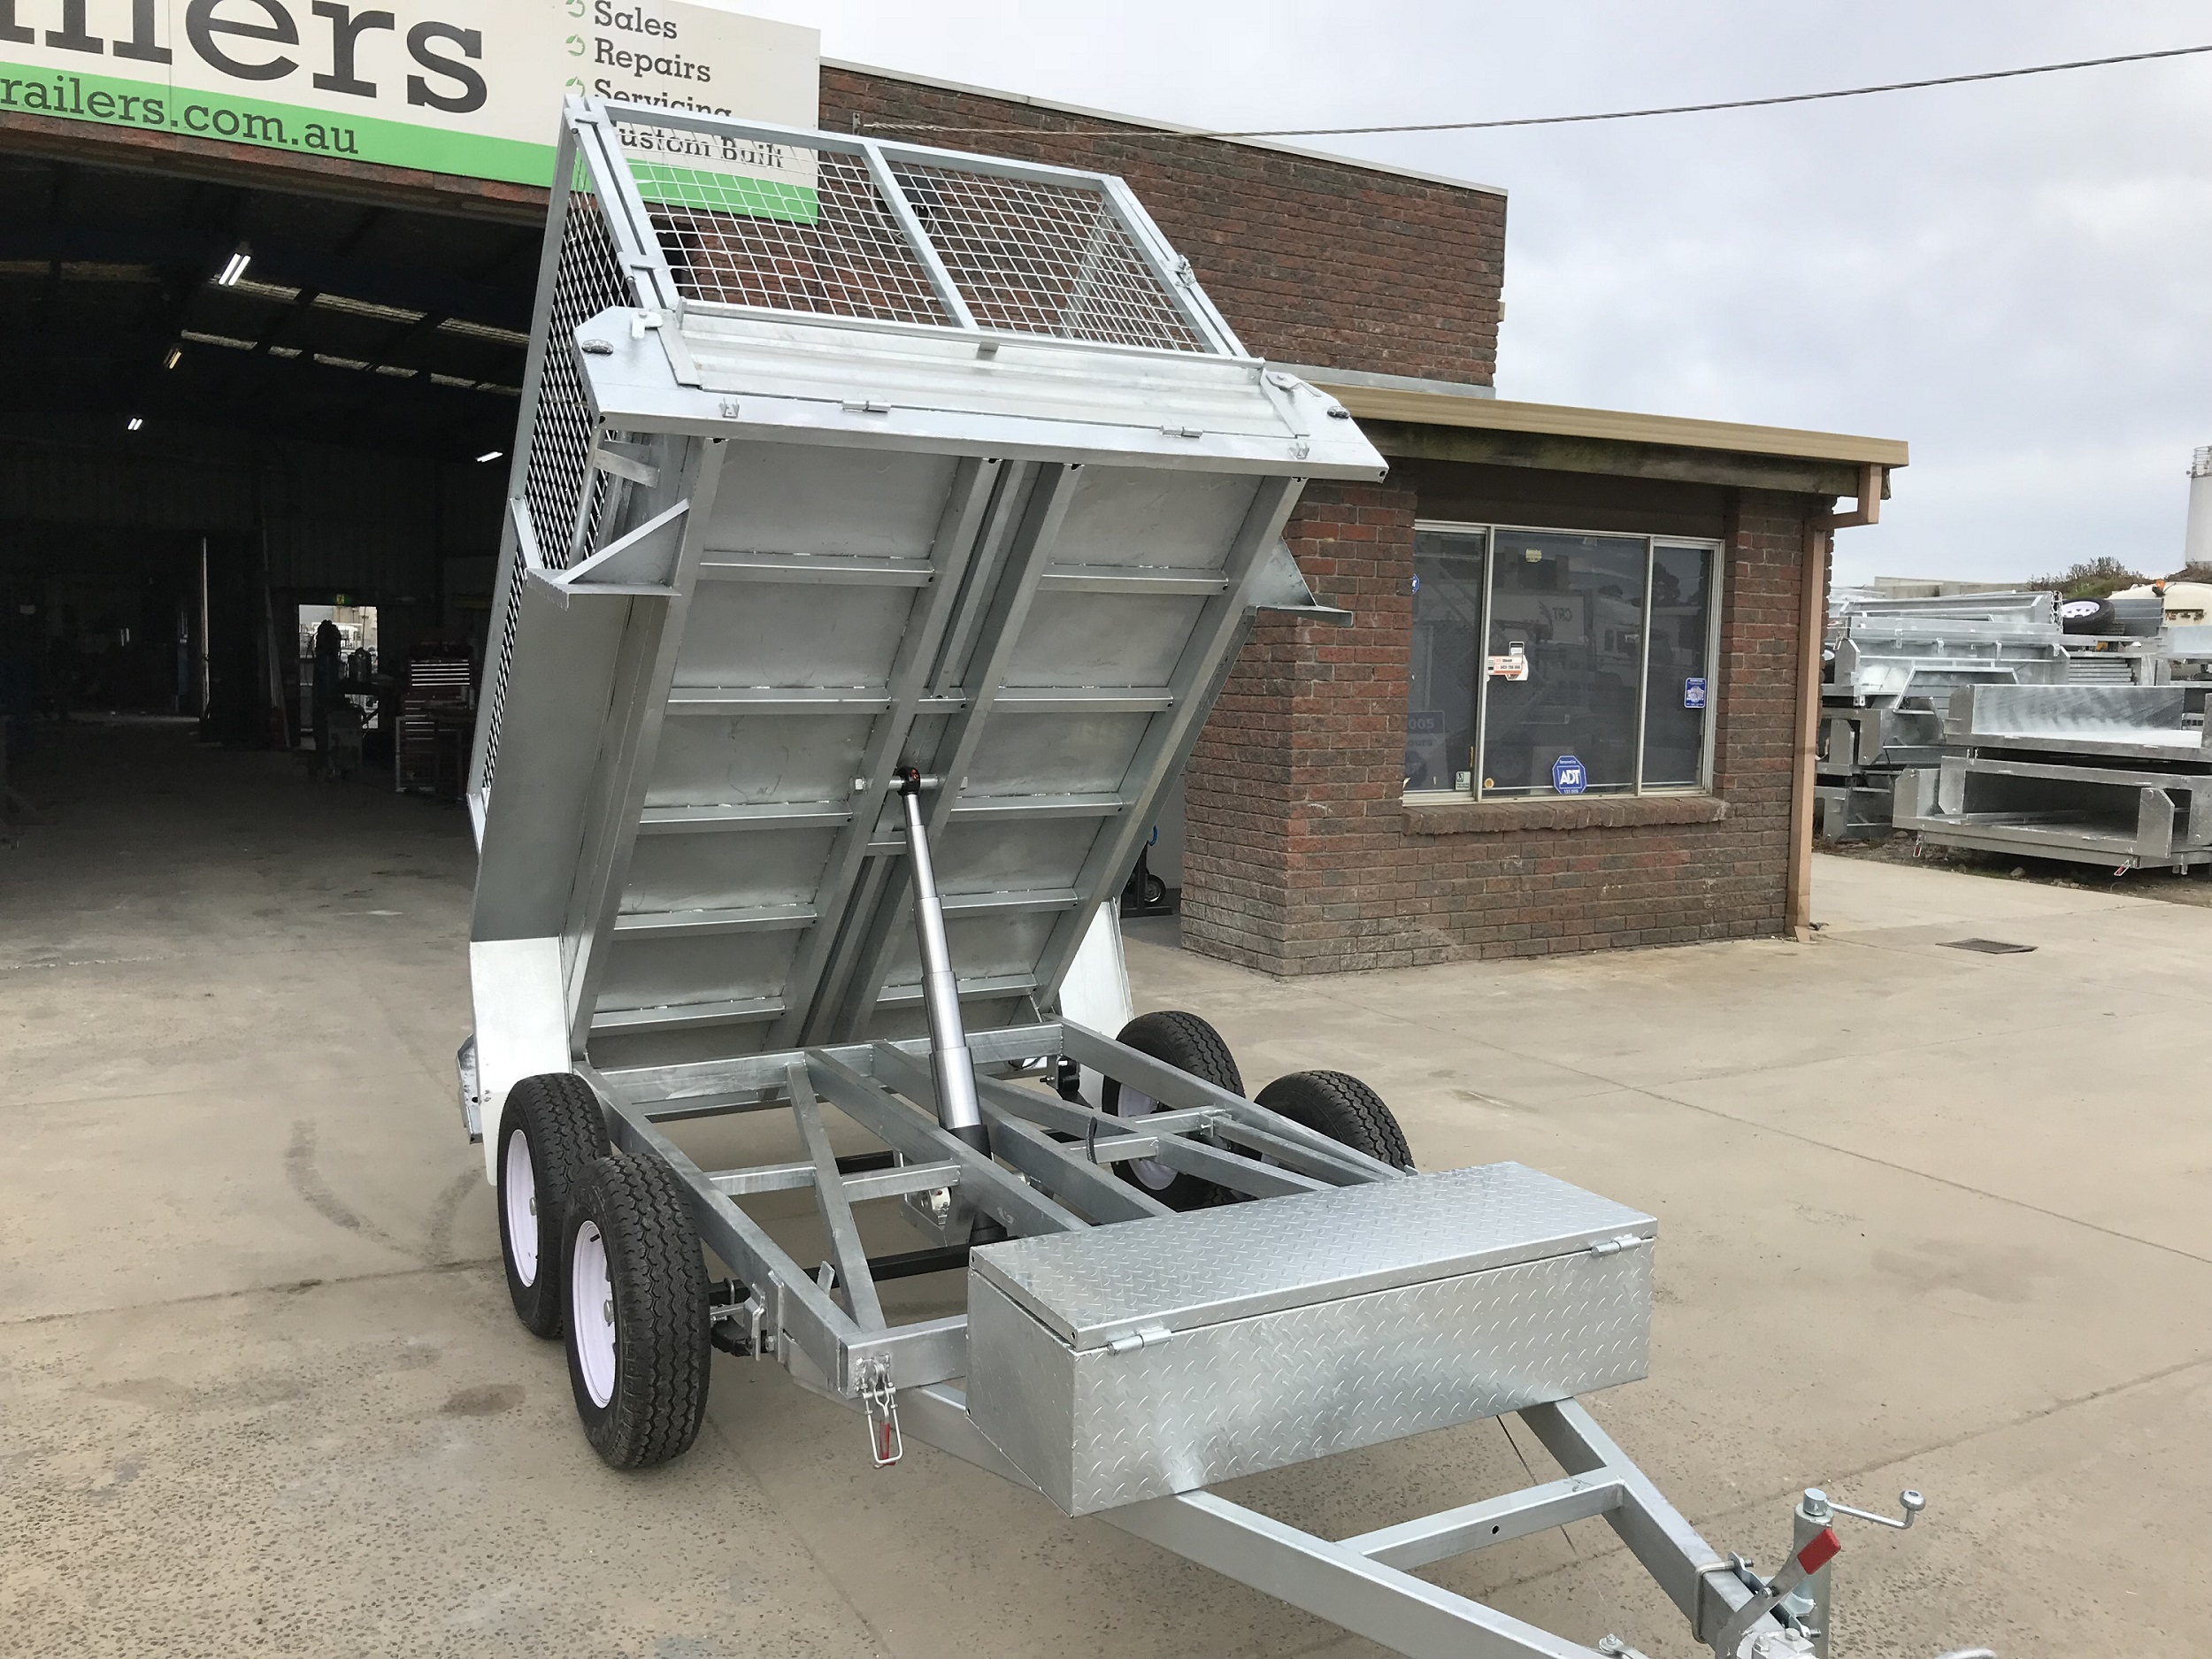 8x5 Hydraulic tandem tipper trailer Galvanised